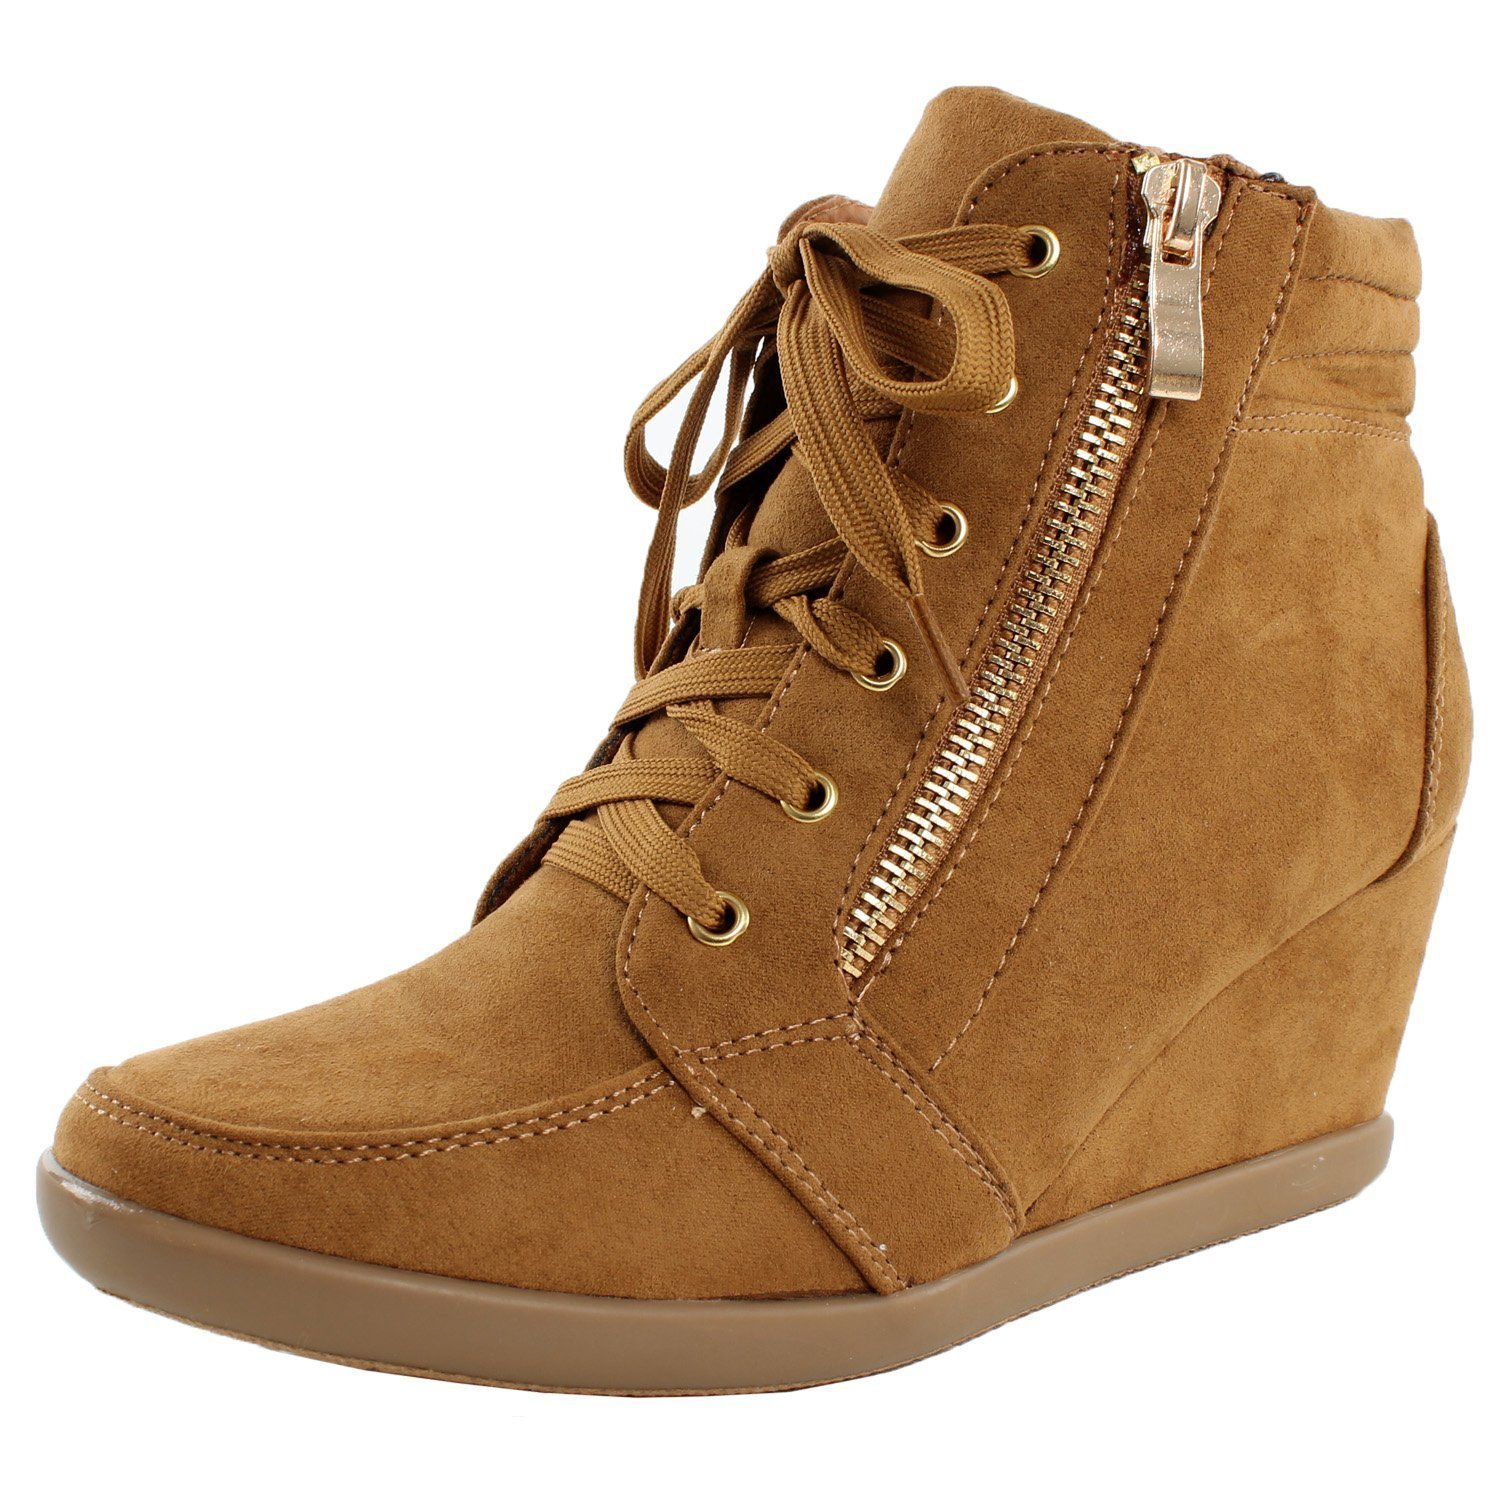 d13b4acc974af Cheap Wedge Bootie Shoes, find Wedge Bootie Shoes deals on line at ...